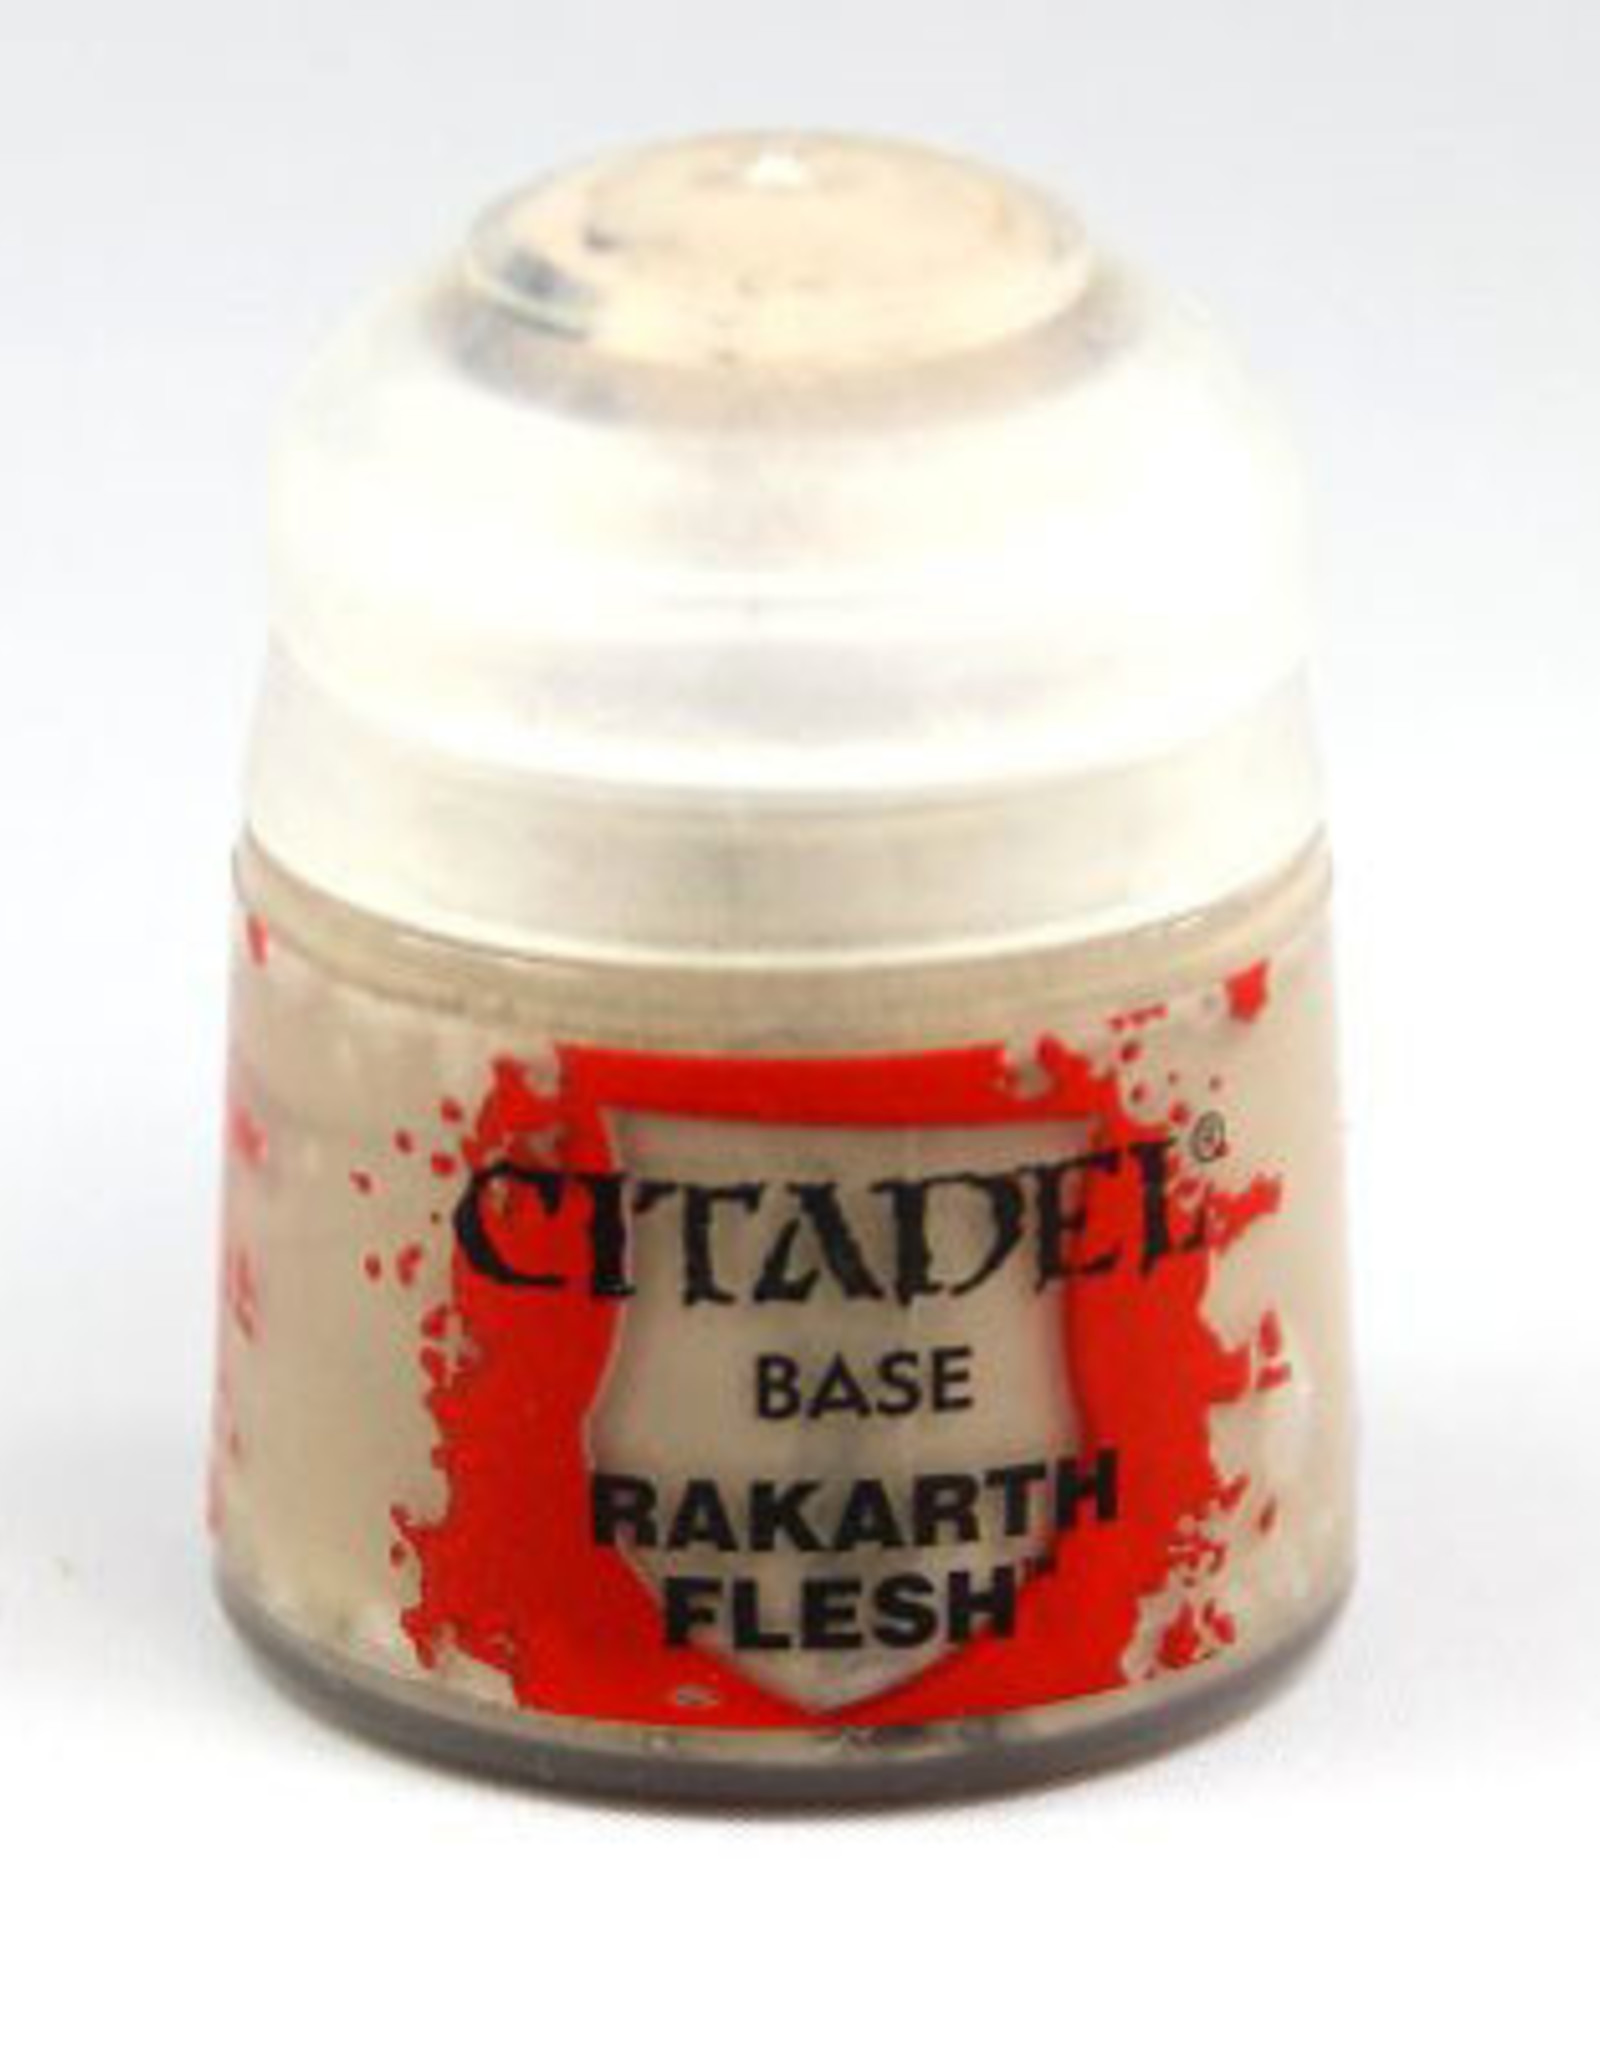 Games Workshop Citadel Paint: Base - Rakarth Flesh